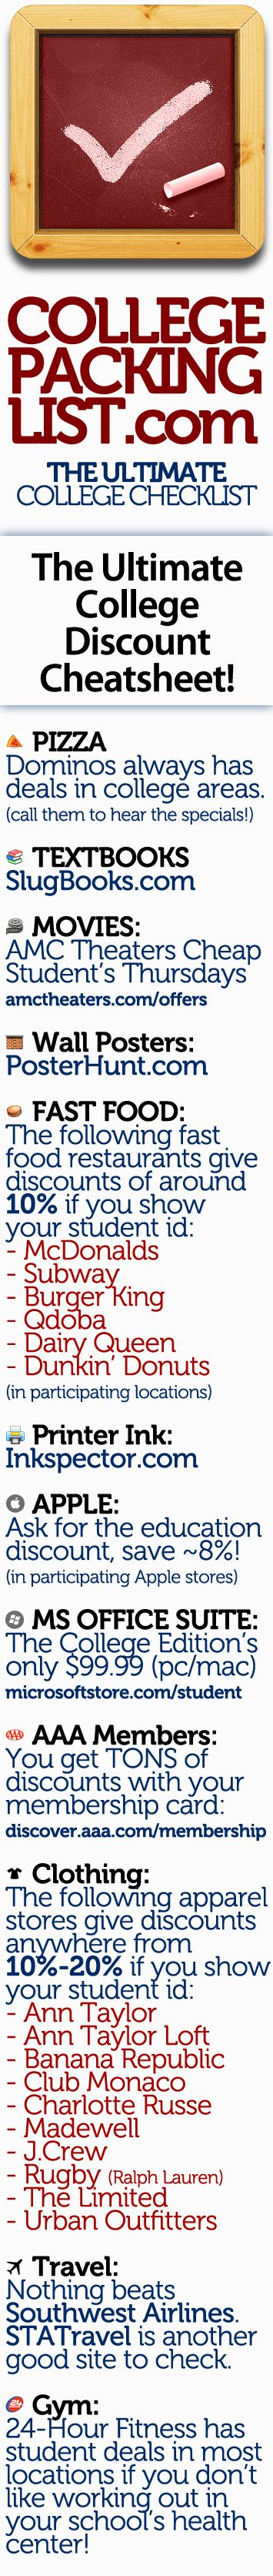 discounts for college. I had know idea I could get a discout at these retail stores and restaurants just by showing my student ID!!!